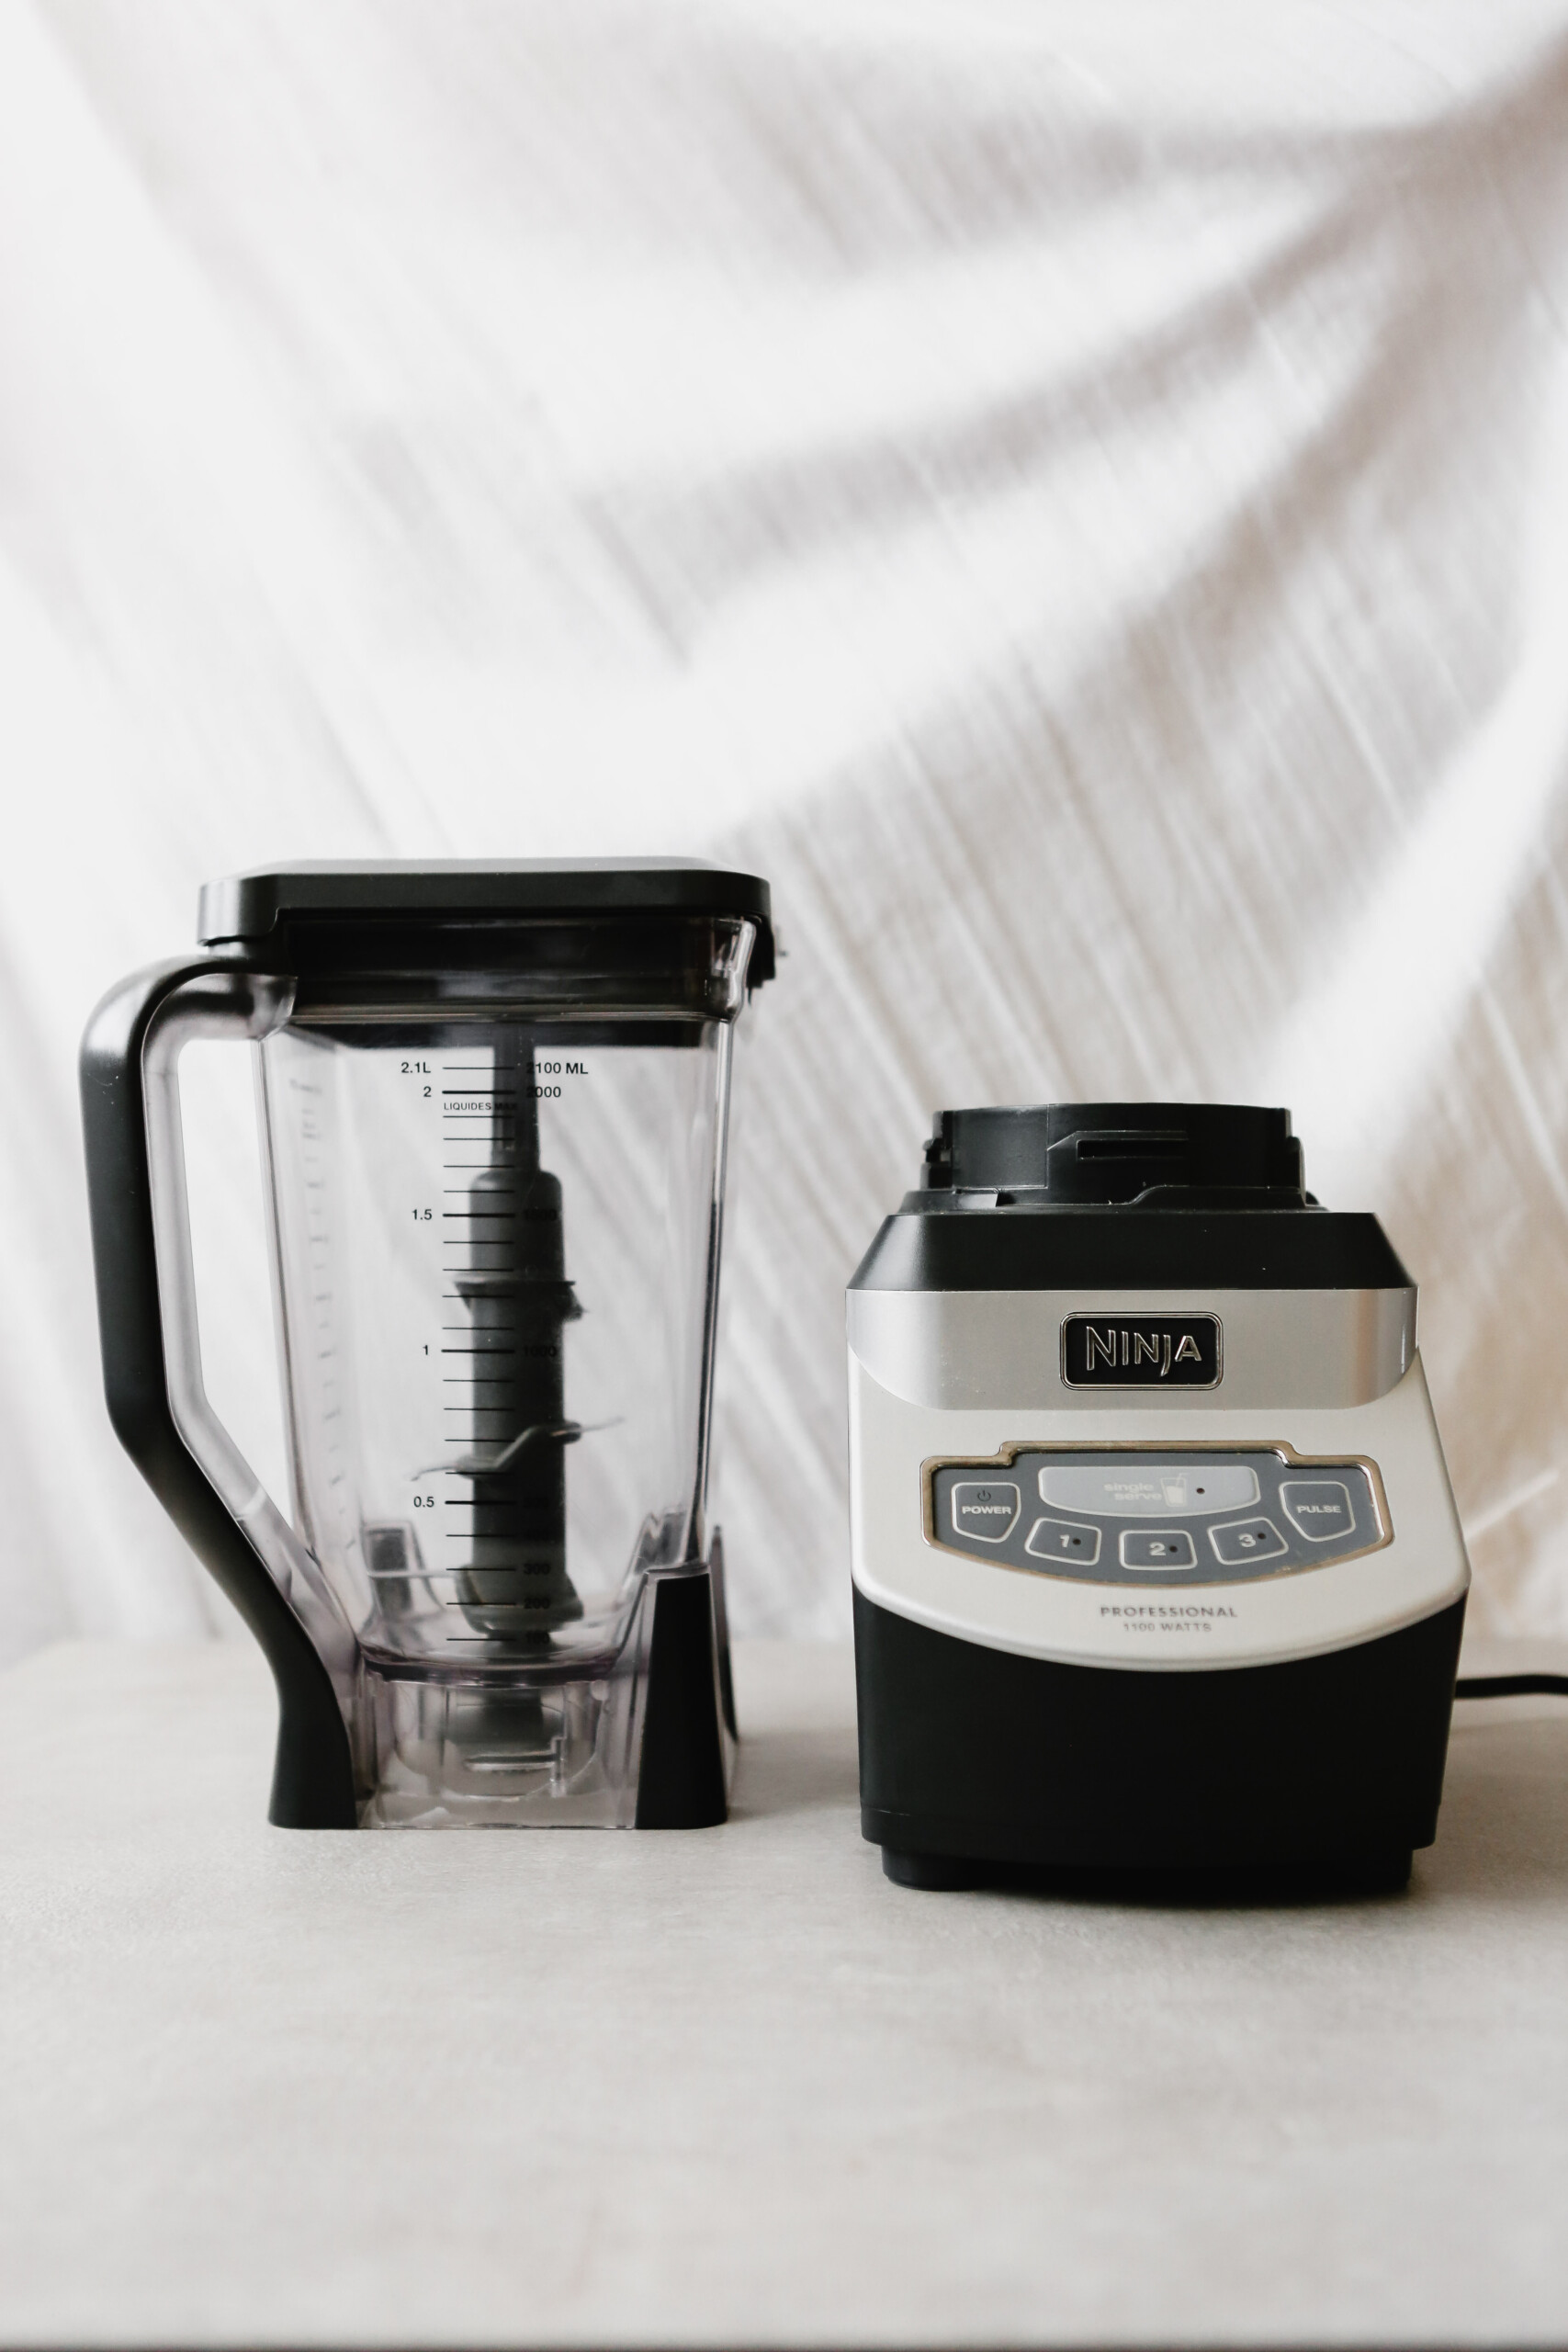 Photograph of a high-powered blender (Ninja) on a gray table with white background